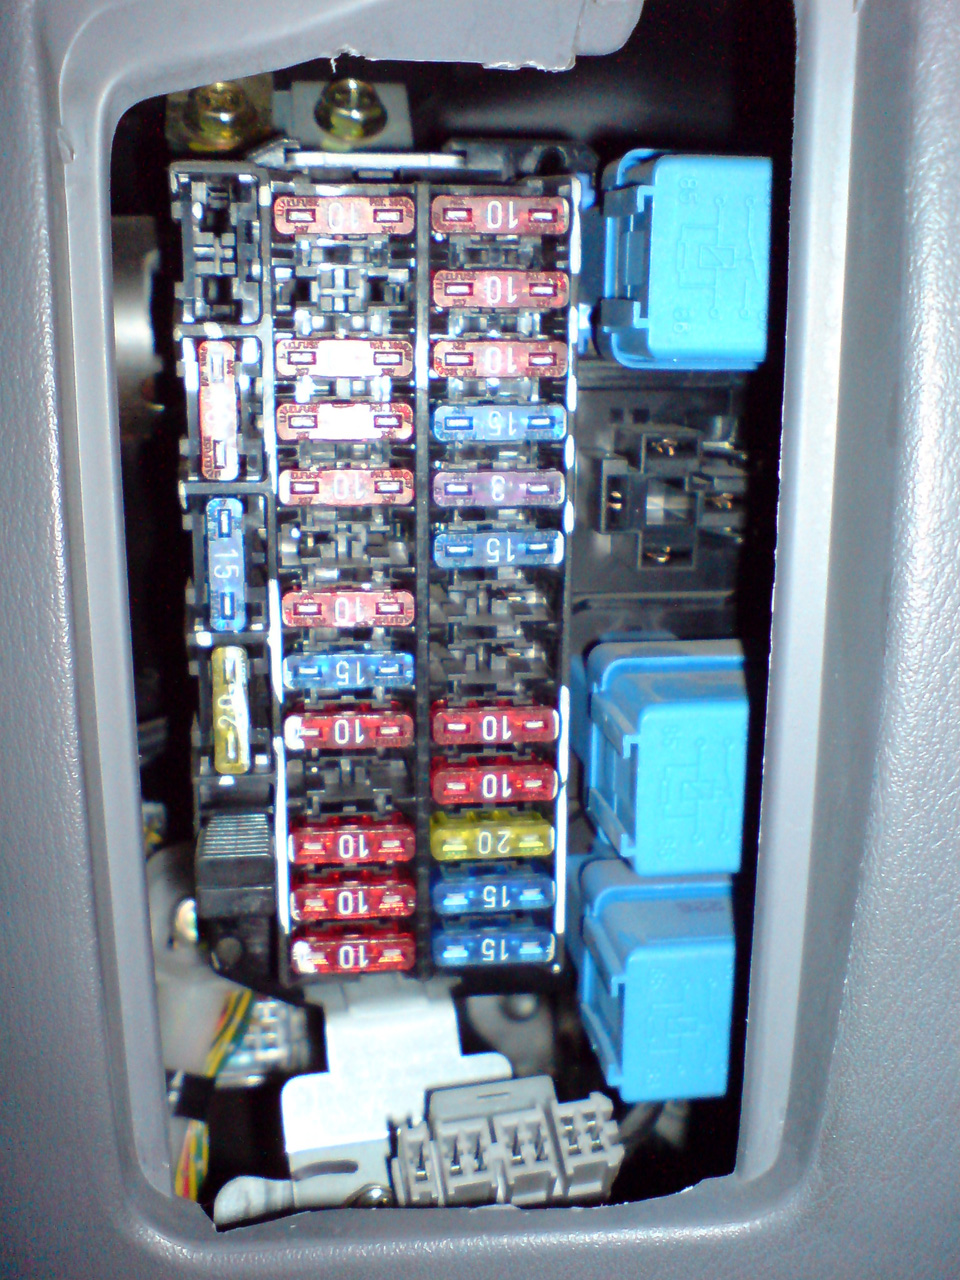 How To Check An Electrical Relay And Wiring Control Circuit as well 22003 Ford F150 Underhood Fuse Box Identification as well 1999 Jeep Wrangler Fuse Box Diagram besides 7men1 350 Master Fuse 2003 F350 6 0 also 2007 Honda Odyssey Parts Diagram. on 2000 jeep fuse identification